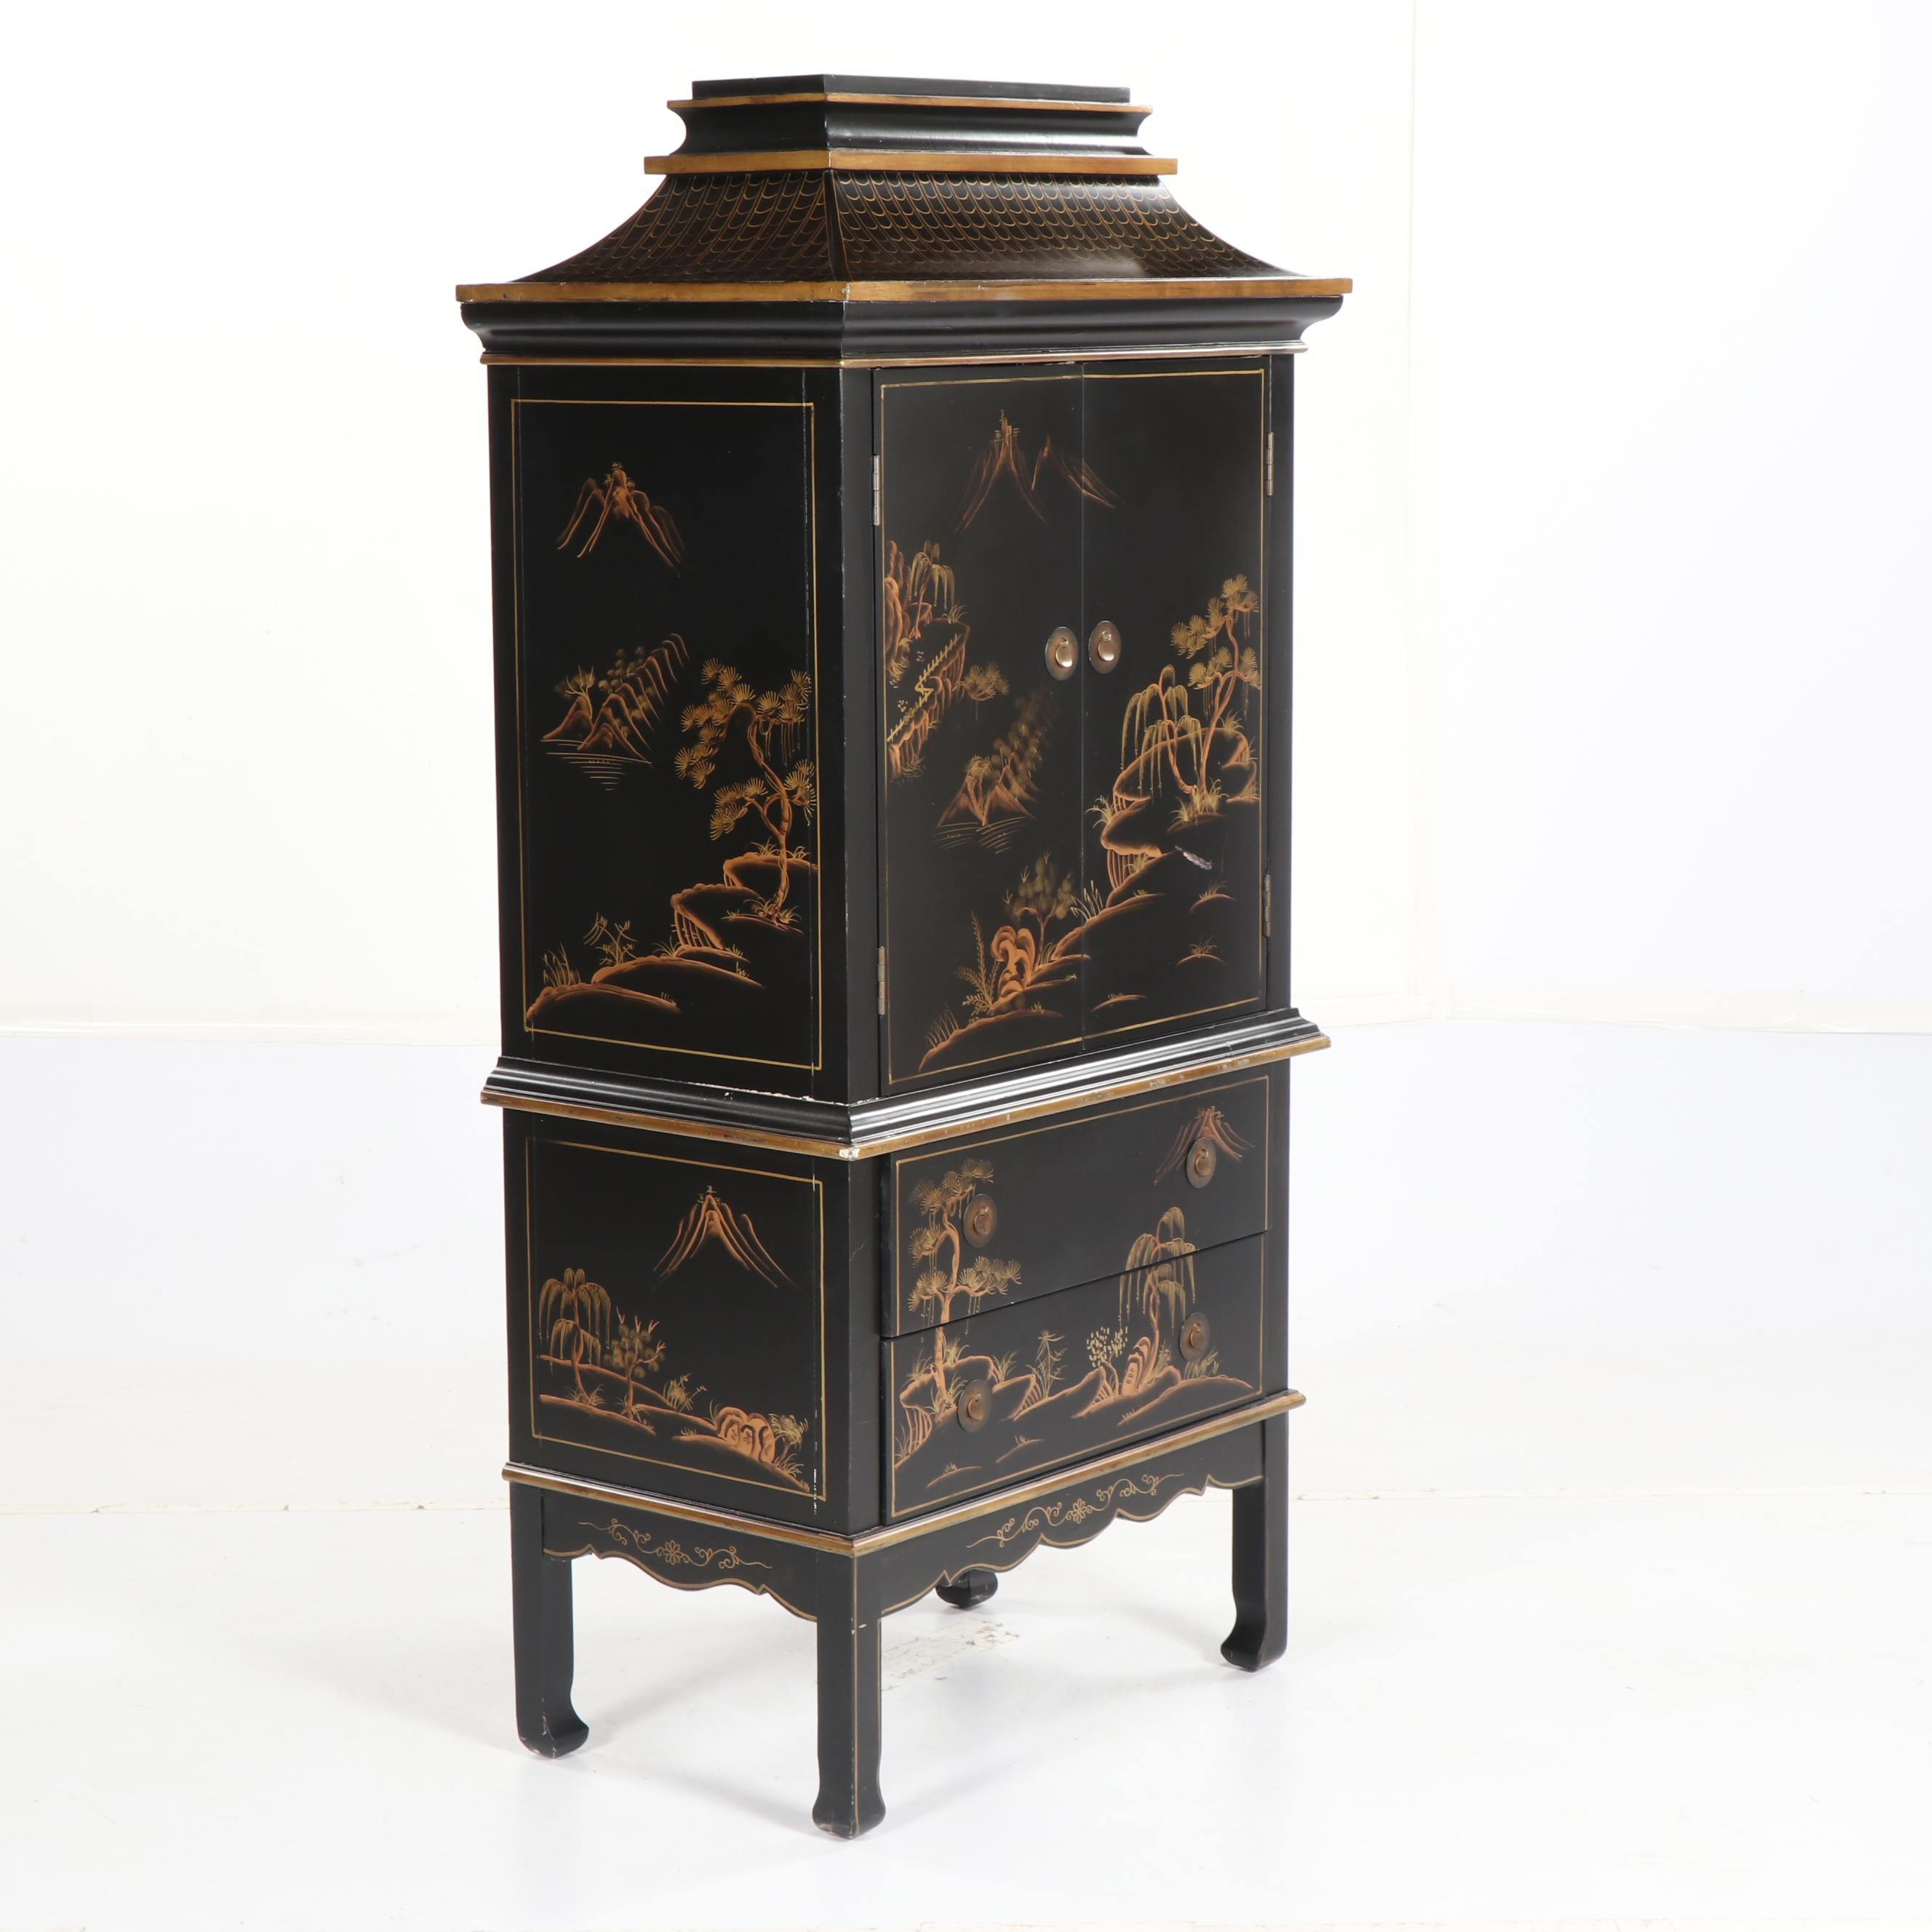 Asian Inspired Painted Wooden Chest of Drawers, 21st Century